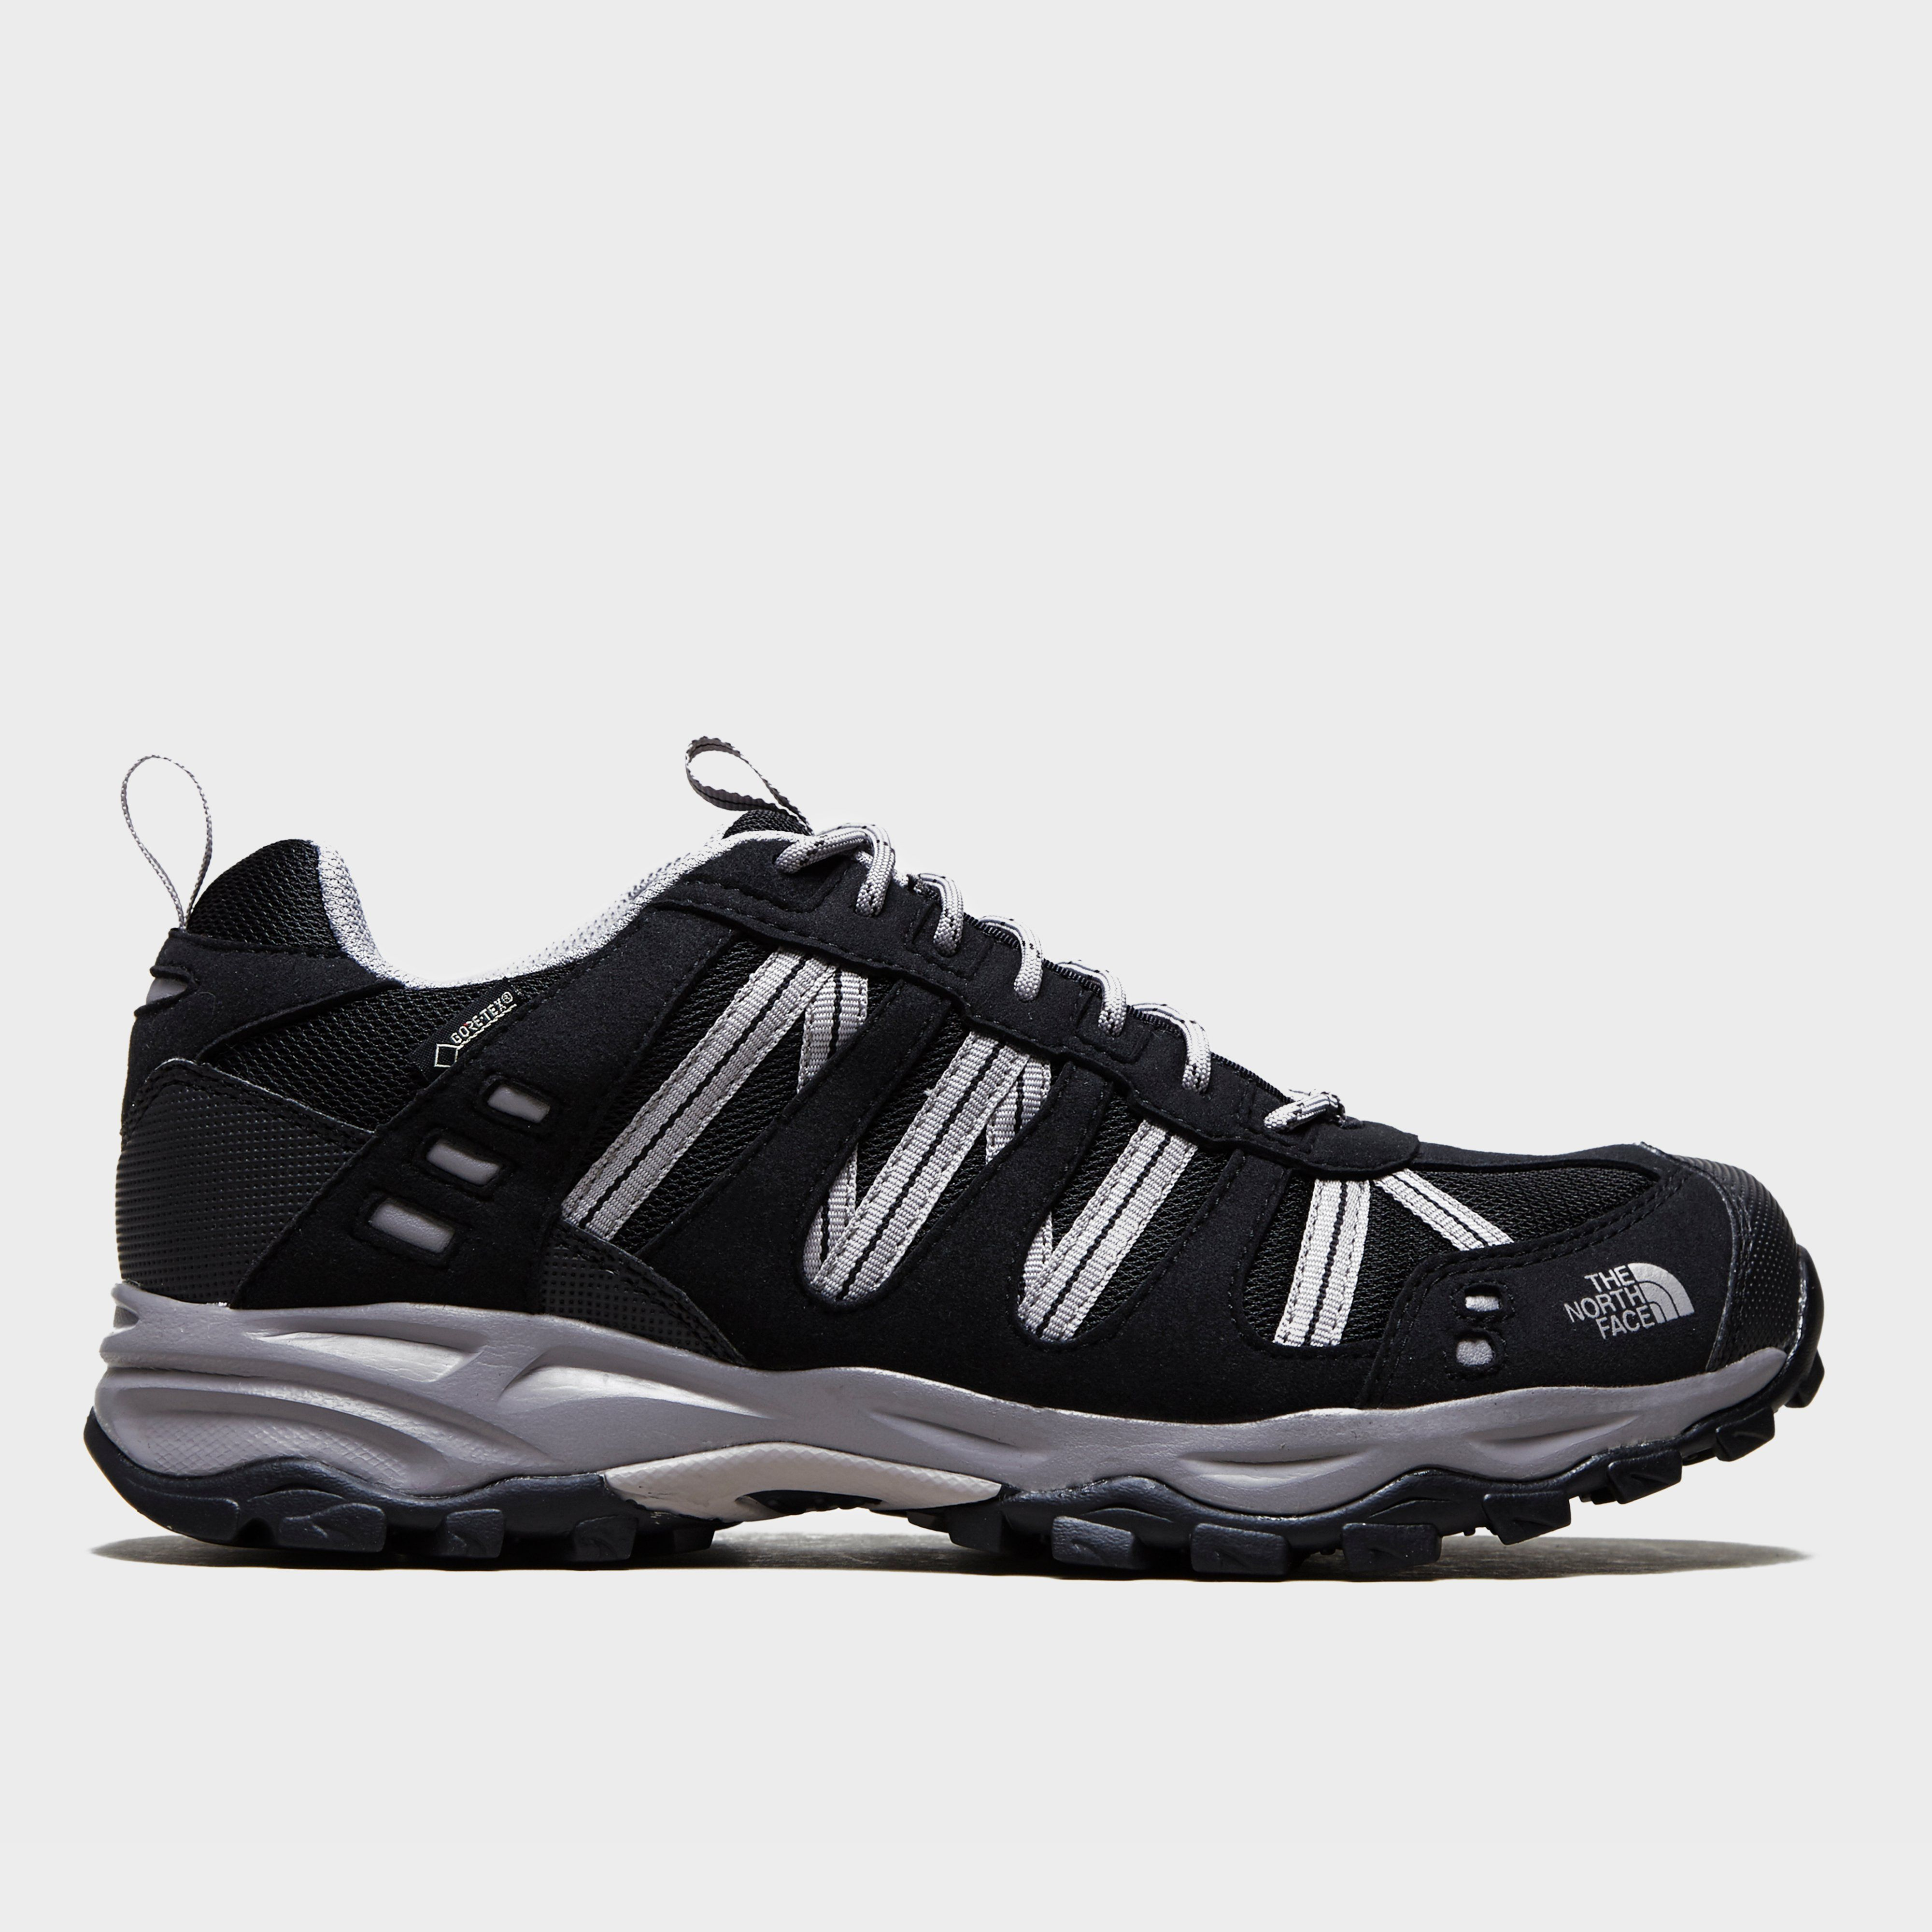 THE NORTH FACE Men's Sakura GORE-TEX® Walking Shoe